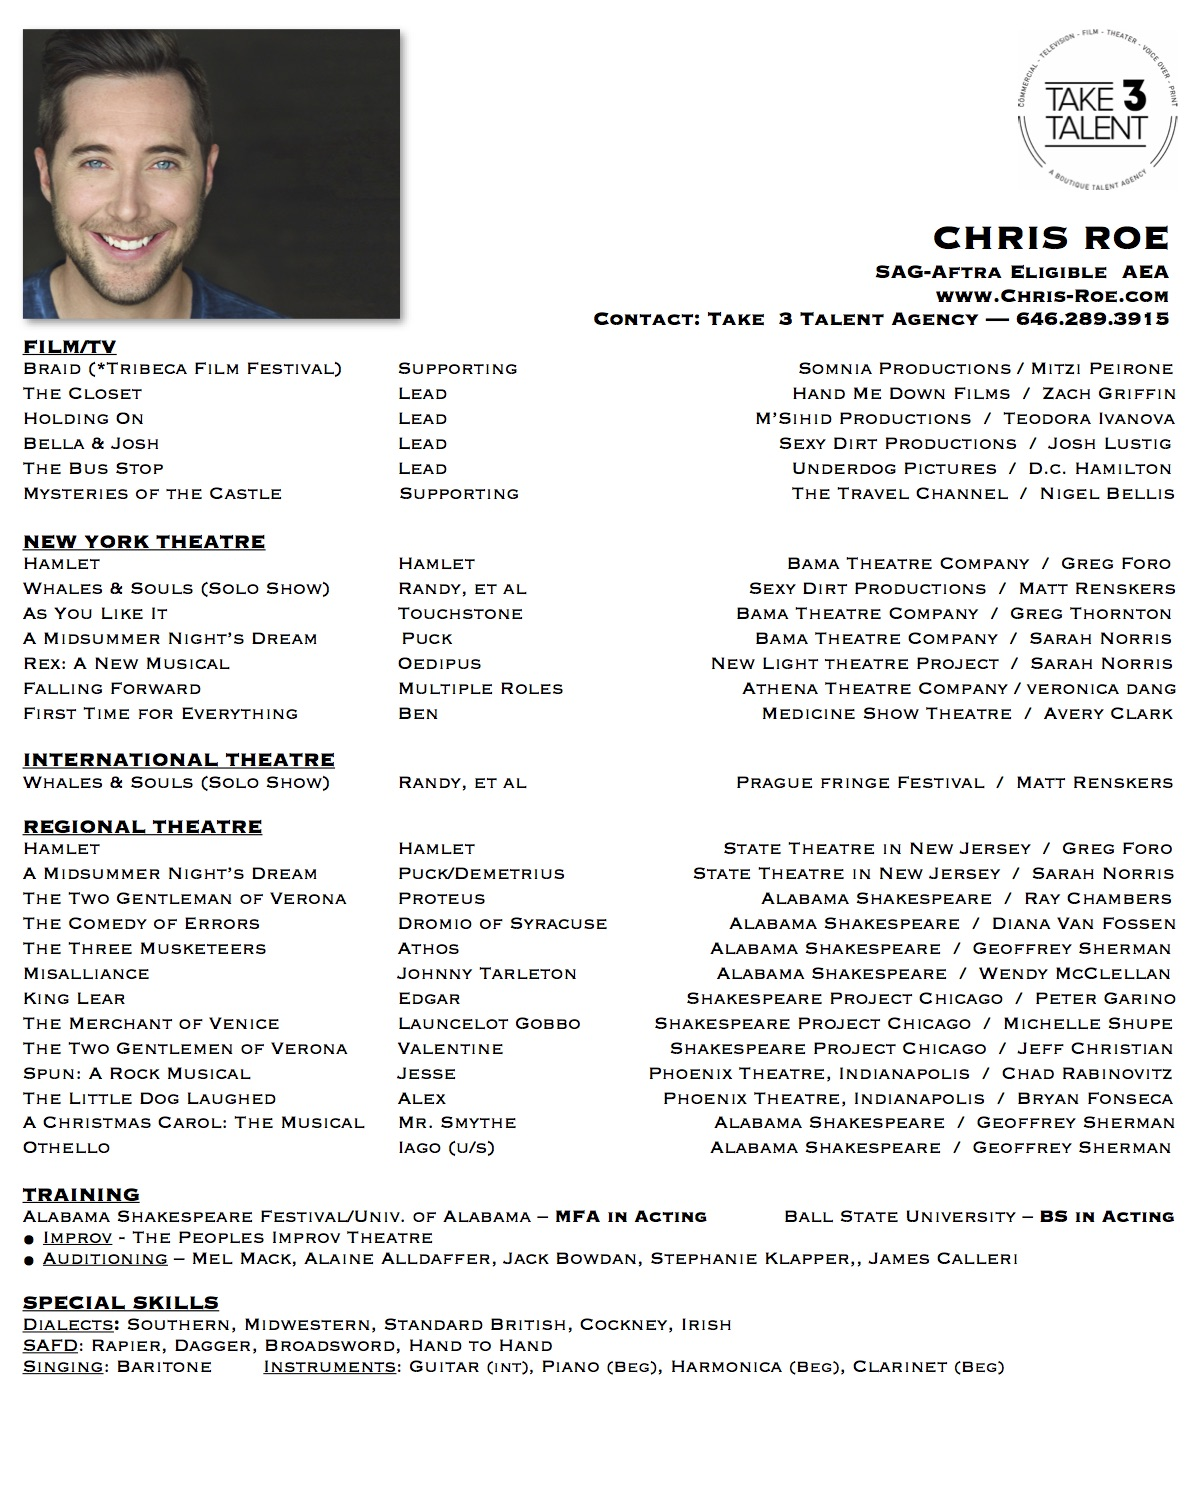 CHRIS ROE TAKE 3 RESUME copy 2.jpg